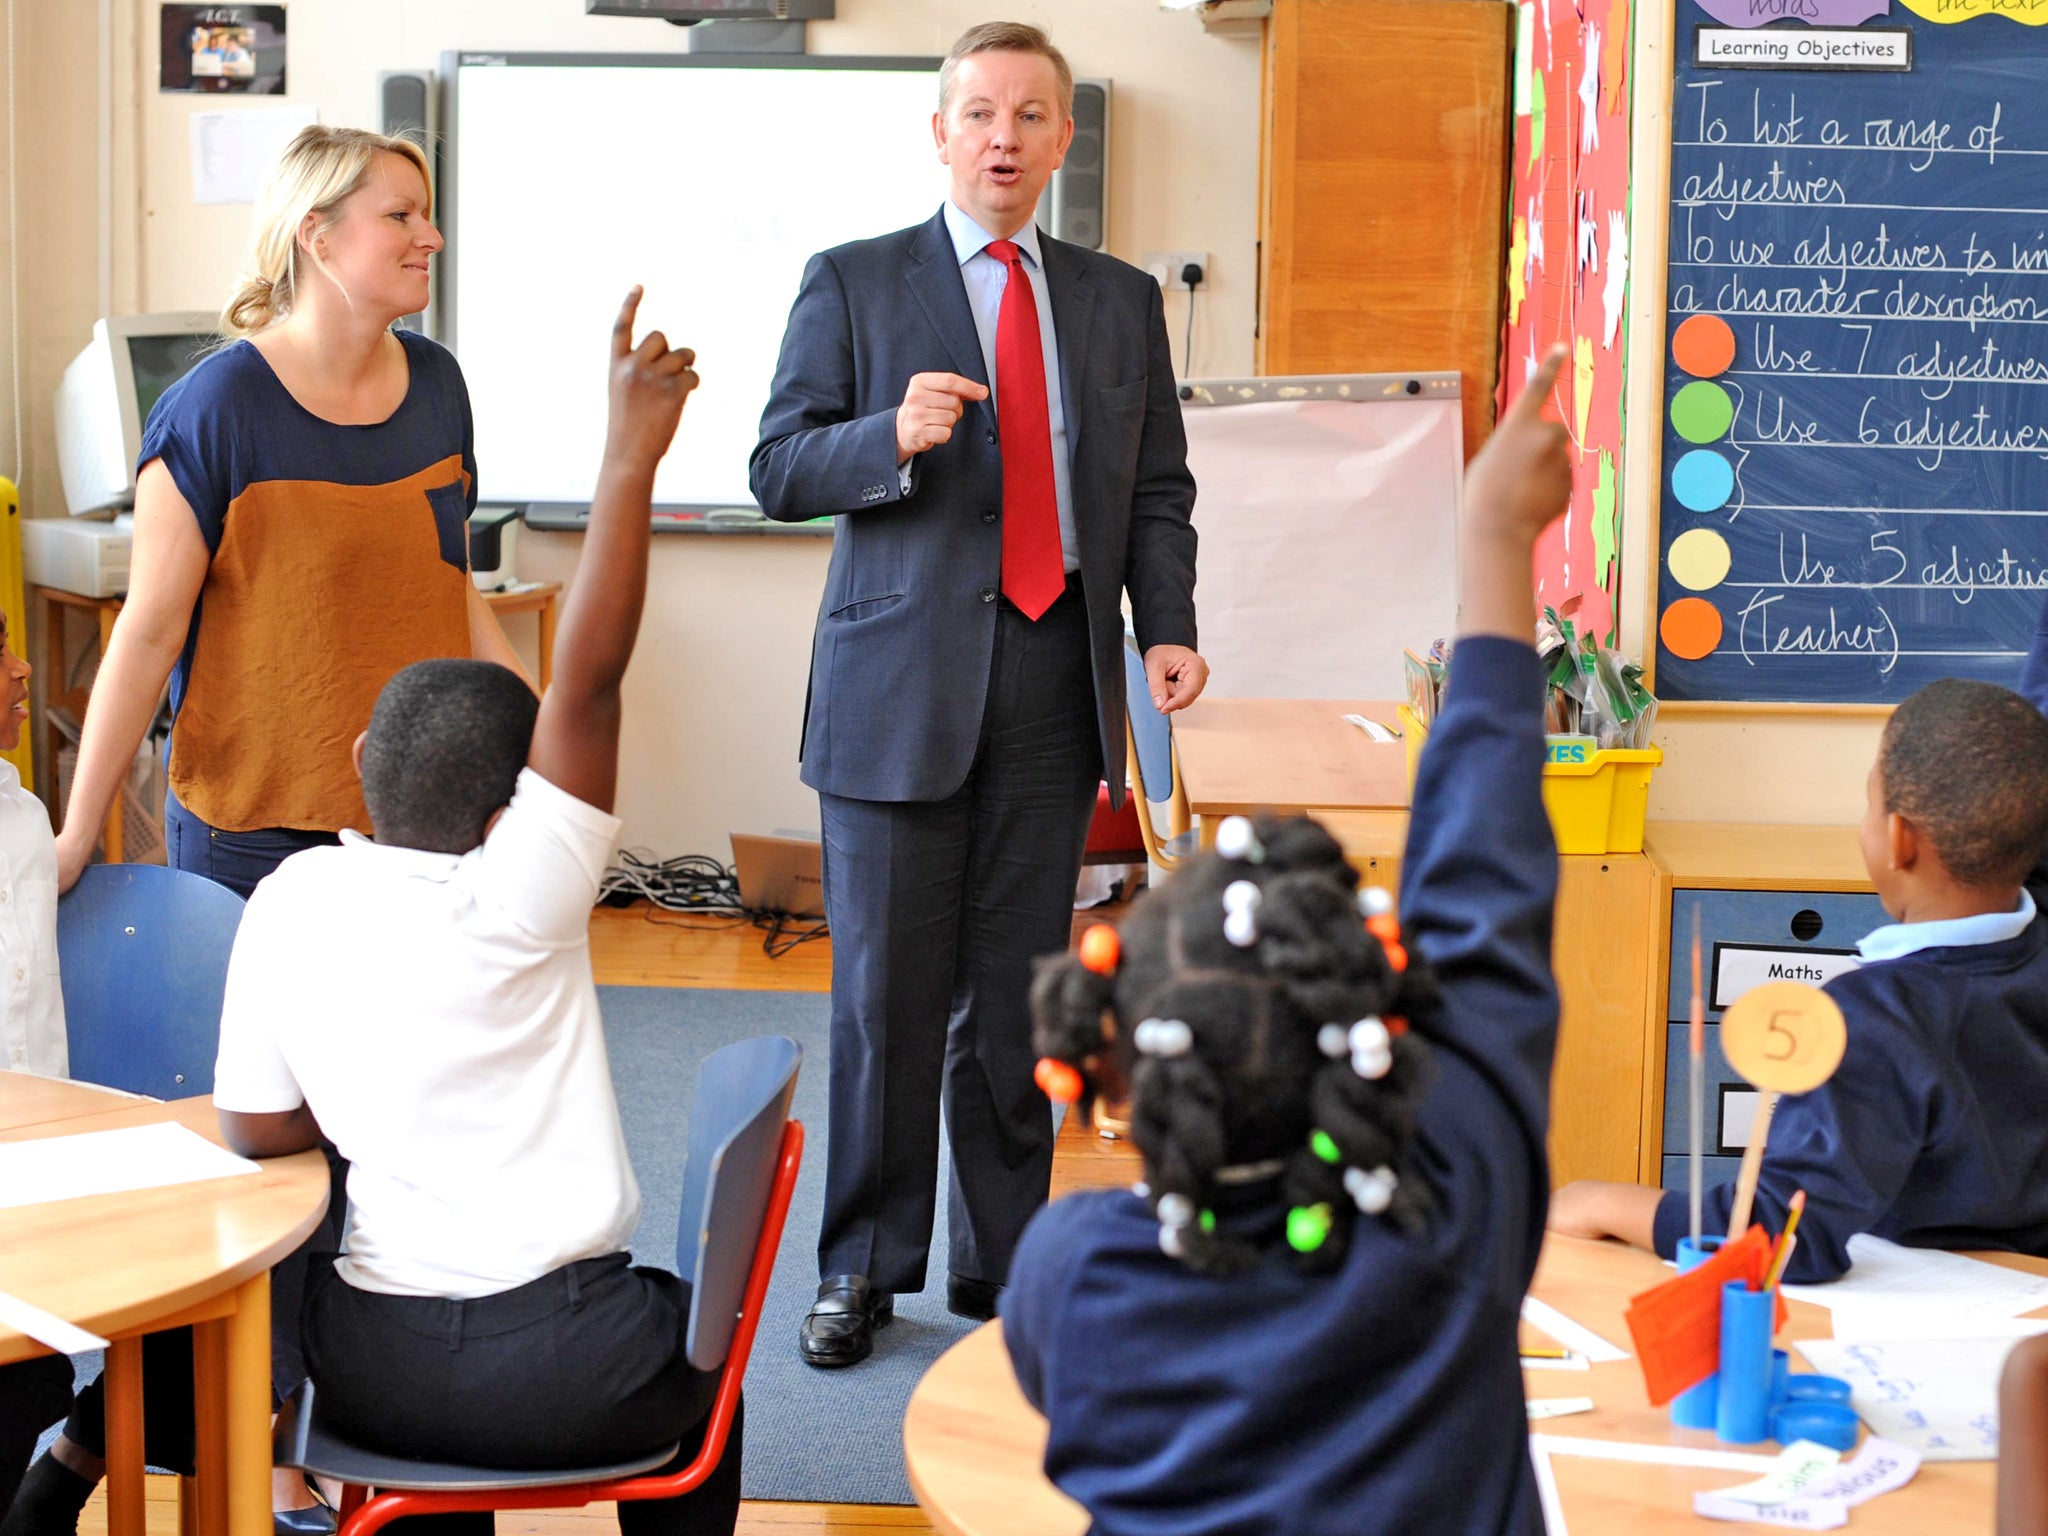 Academies face crackdown amid concerns about standards